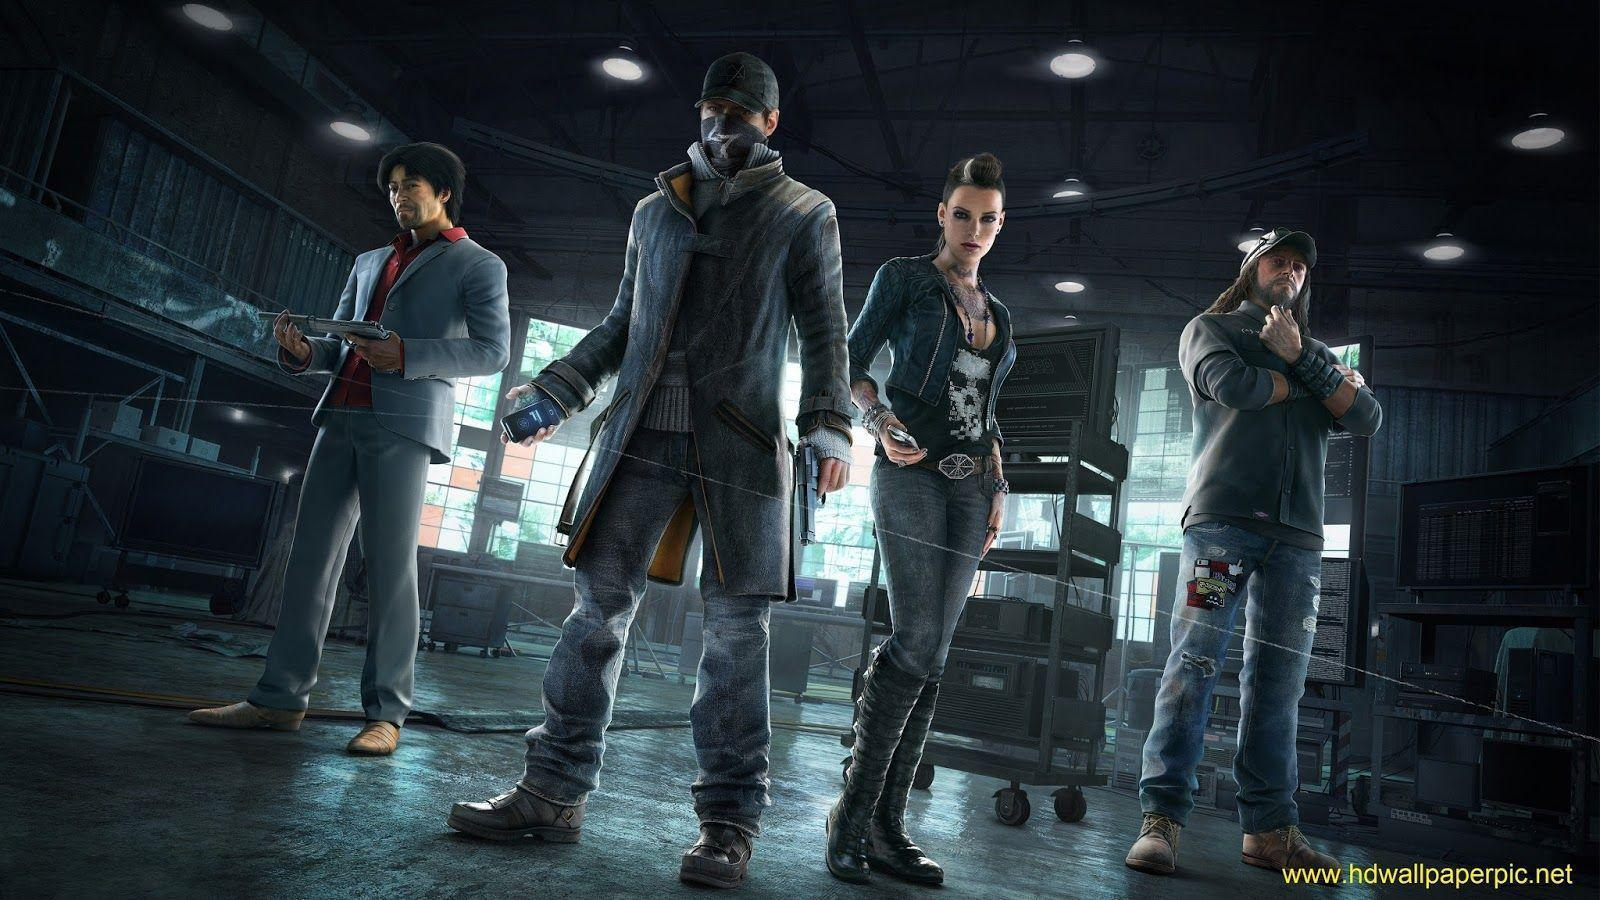 Watch dogs wallpaper hd 1440x900